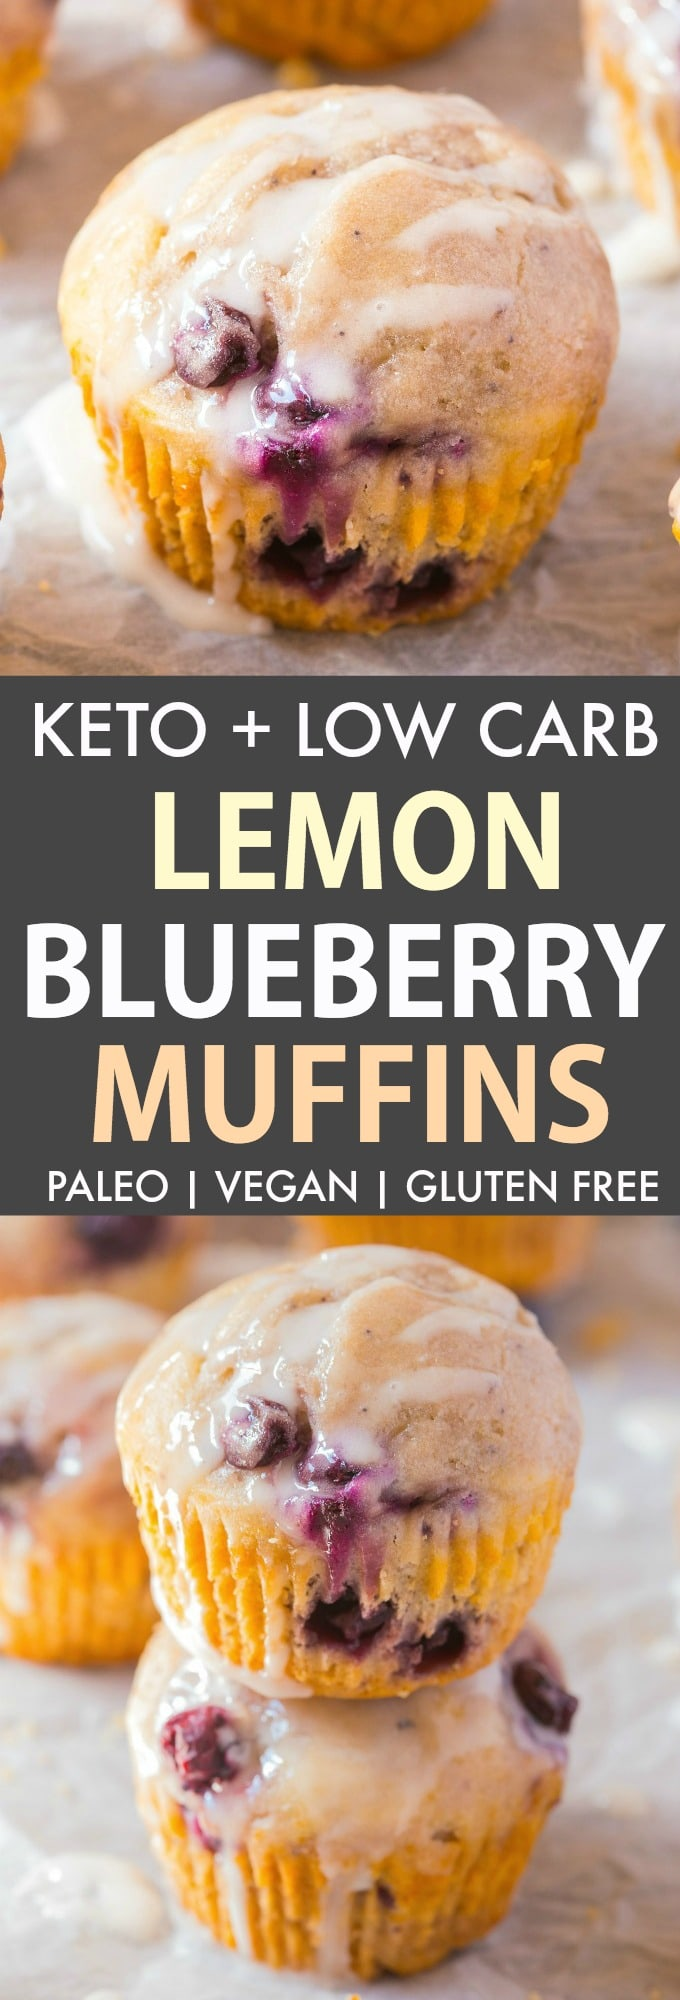 Keto Lemon and Blueberry Muffins topped with a coconut butter glaze.